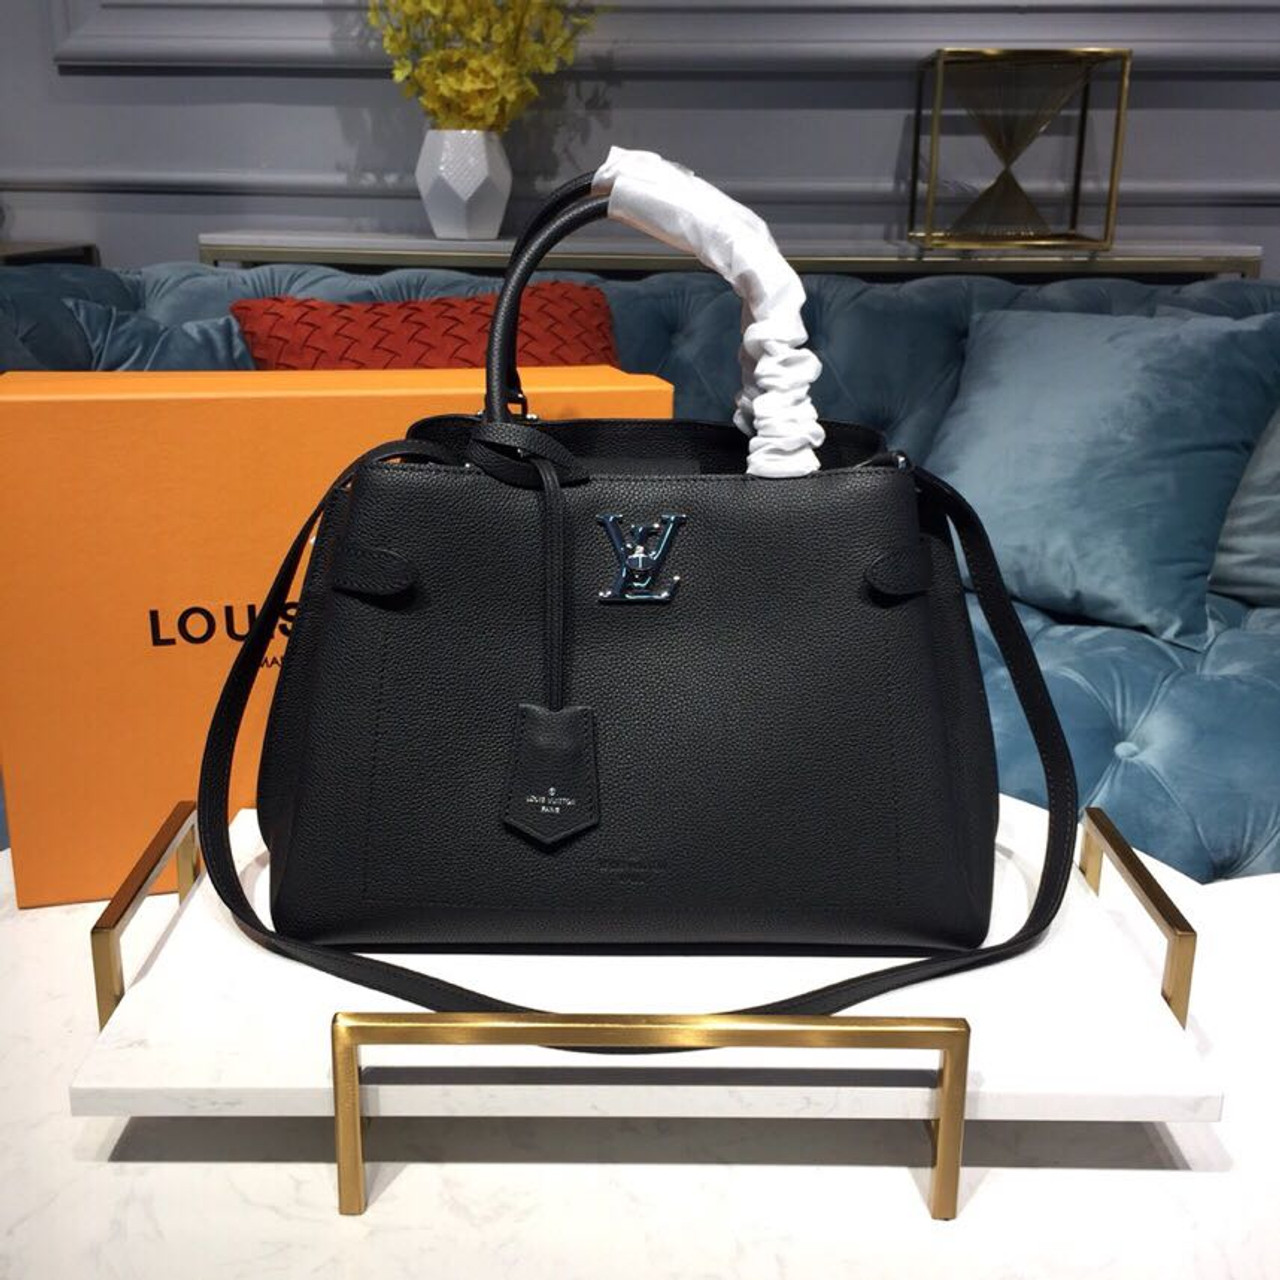 get new top-rated real great discount for Louis Vuitton Lockme Day Tote Bag 33cm Monogram Empreinte Canvas  Spring/Summer 2019 Collection M53730, Noir